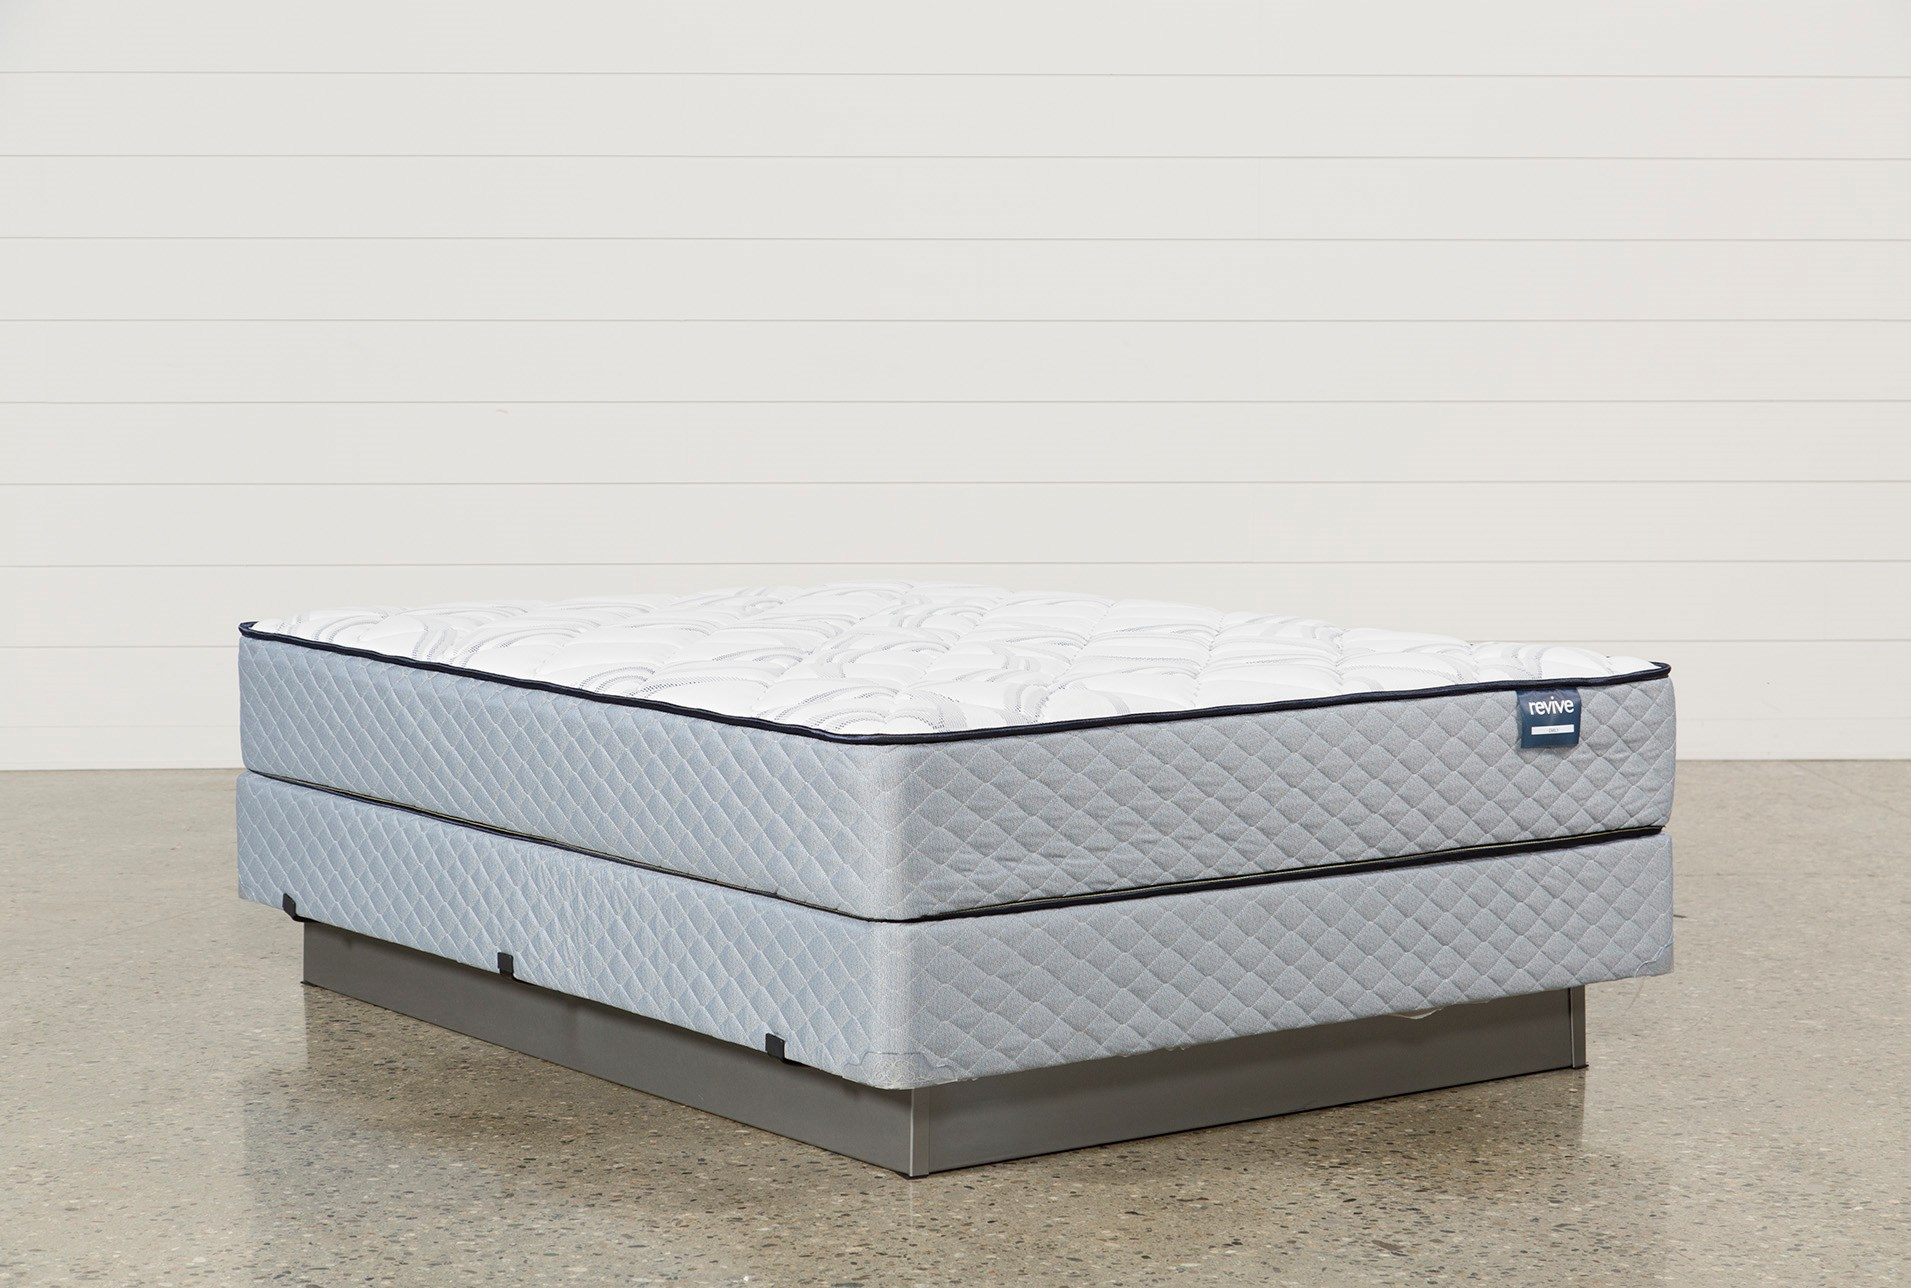 comparison and foam density a twin super bed double bedroom high size queen full mattress king for memory of